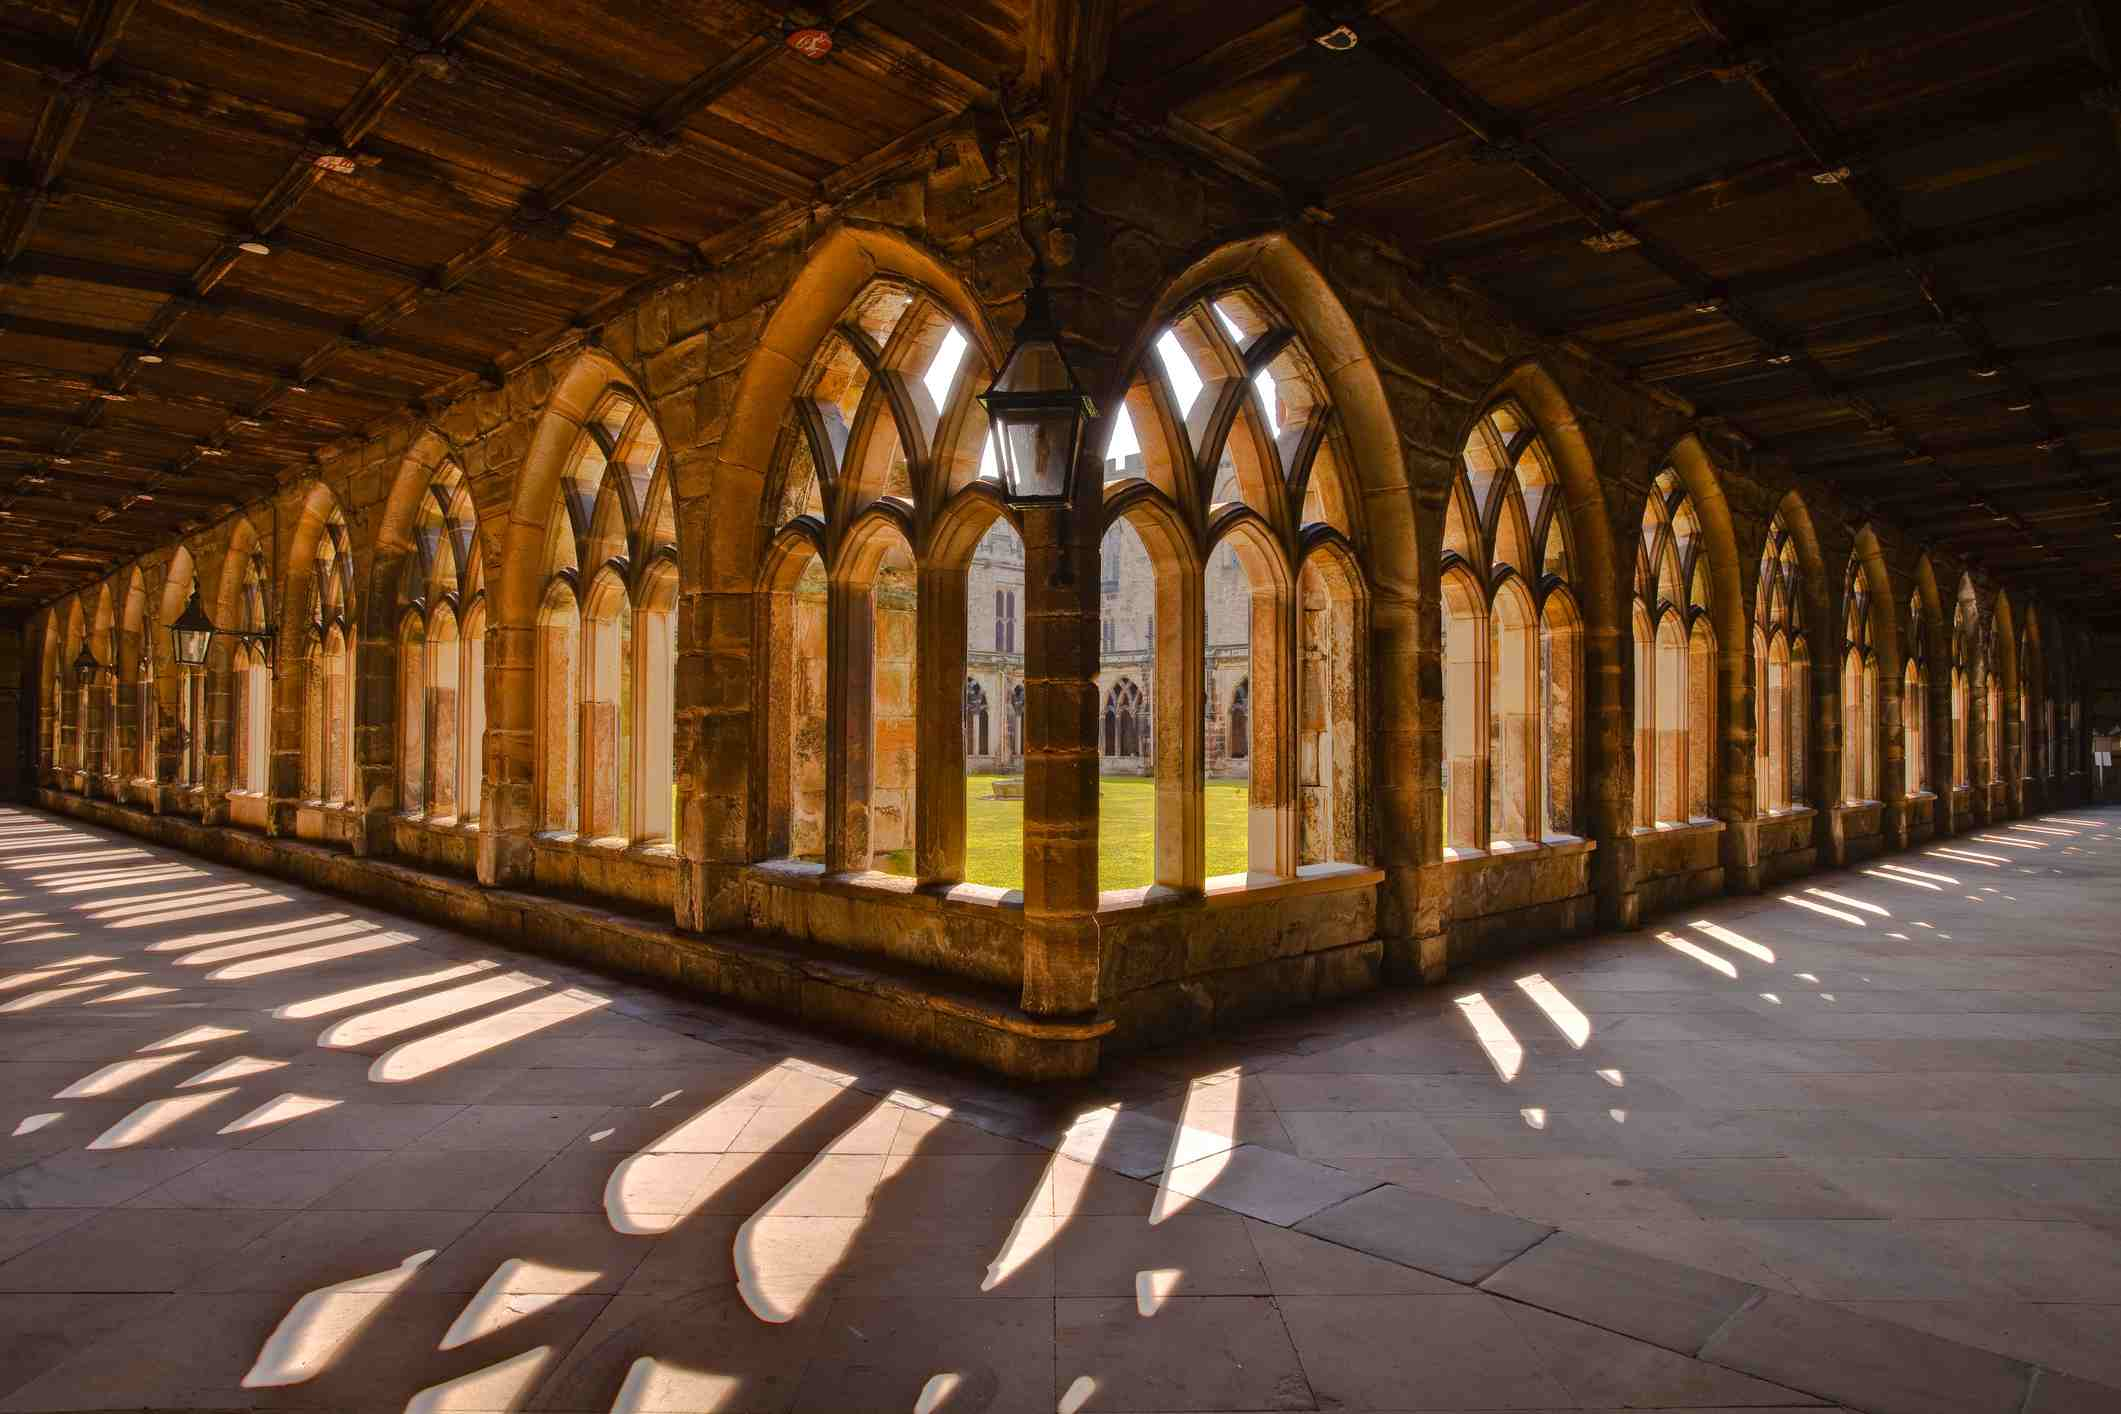 The cloisters of Durham cathedral.